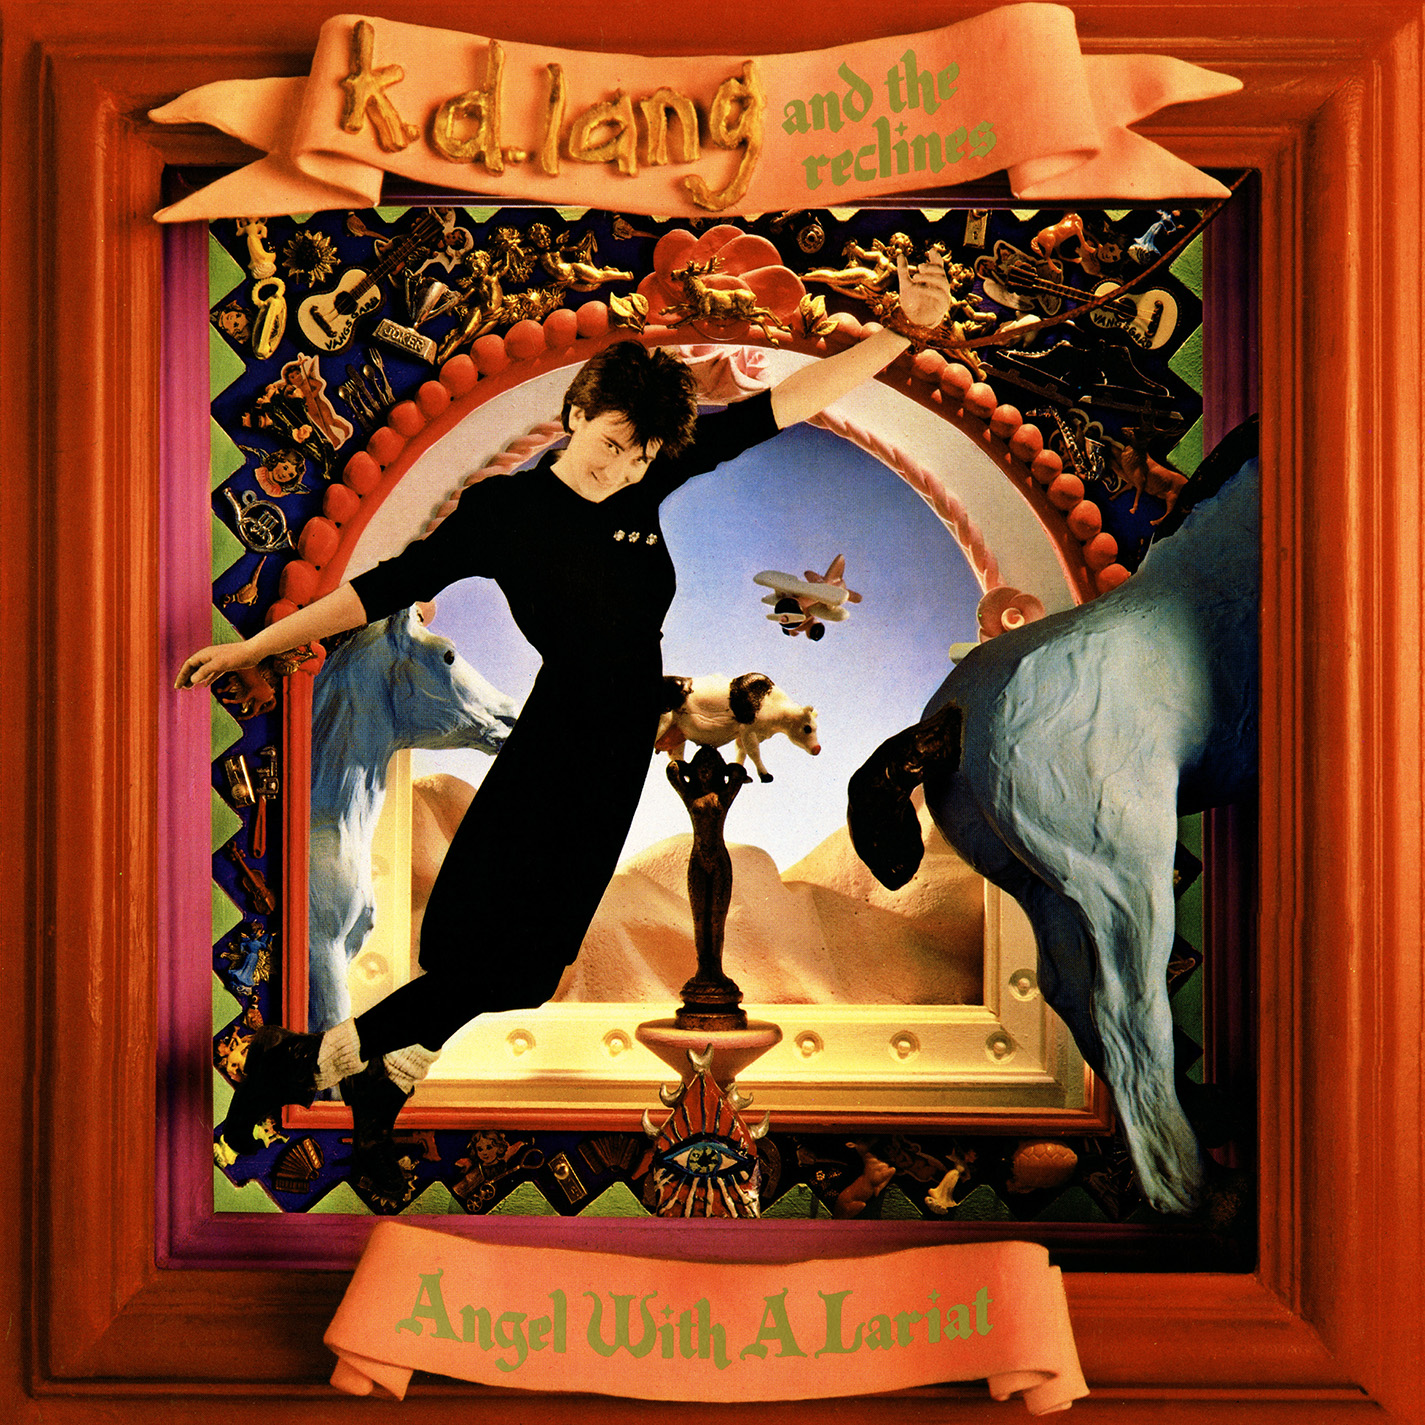 K.D. Lang & The Reclines - Angel With A Lariat [RSD Drops Aug 2020]